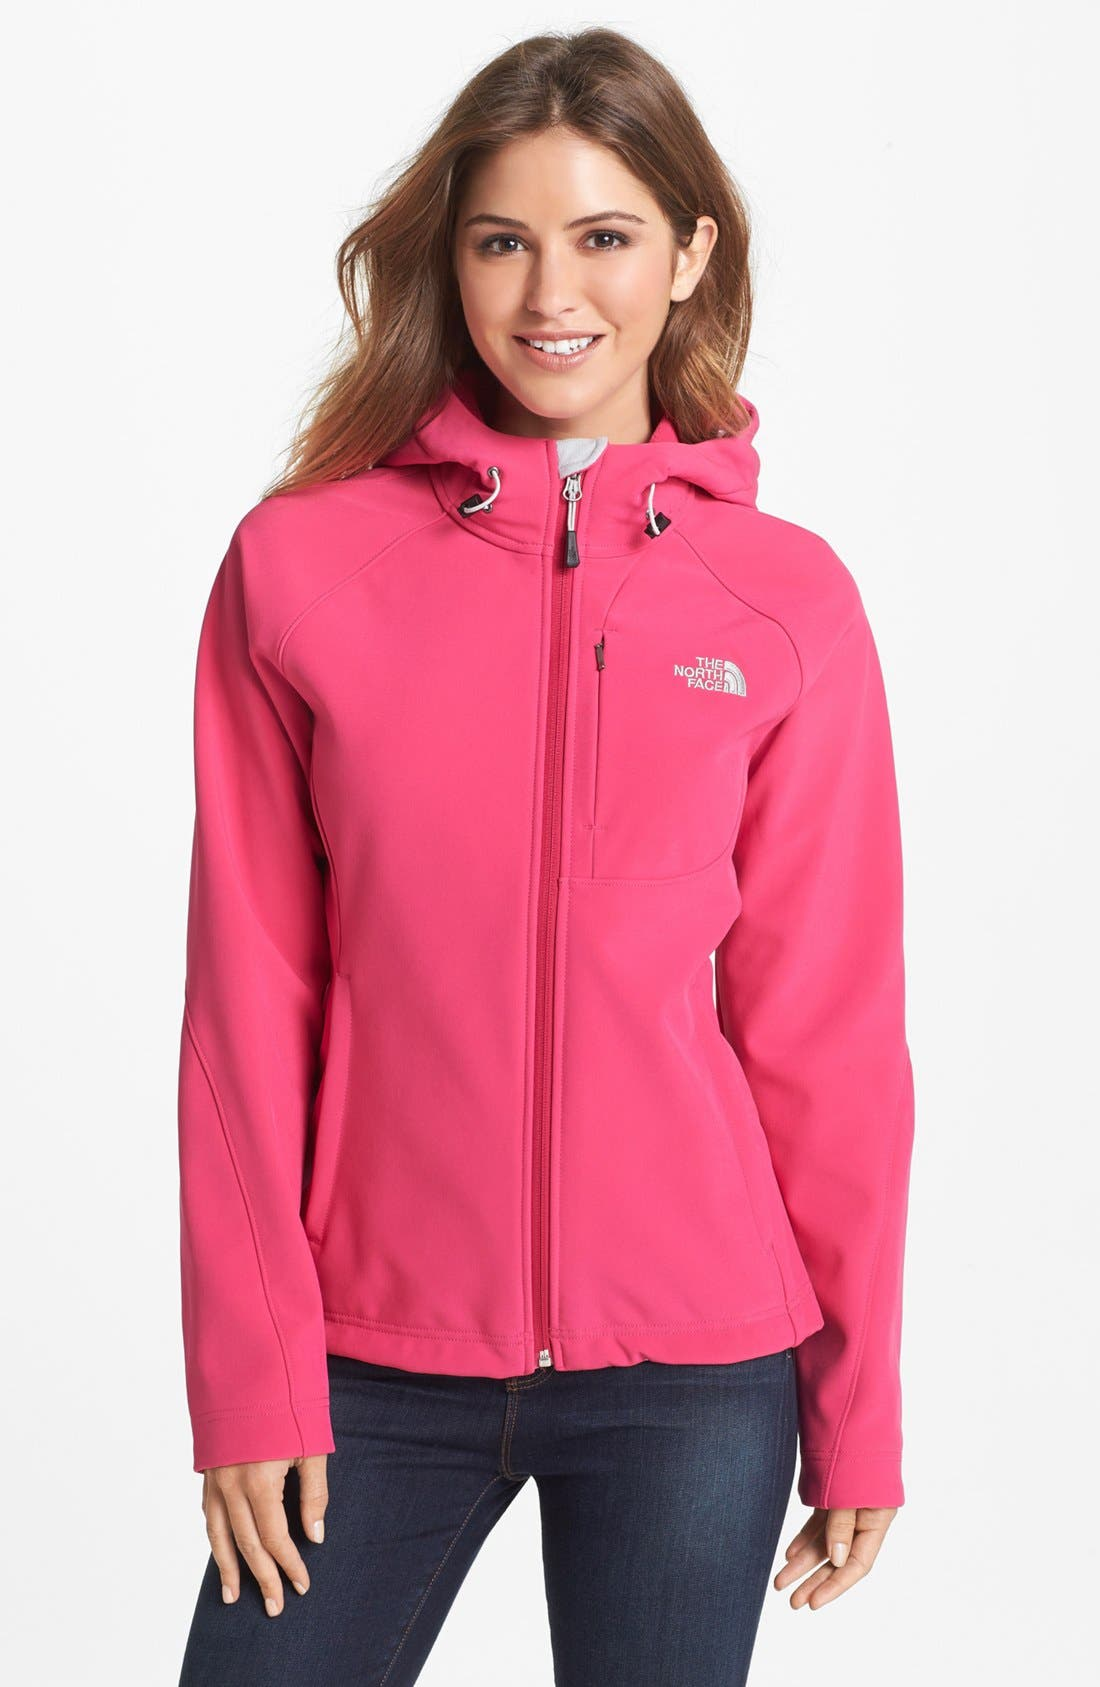 Alternate Image 1 Selected - The North Face 'Apex Bionic' Hooded Soft Shell Jacket